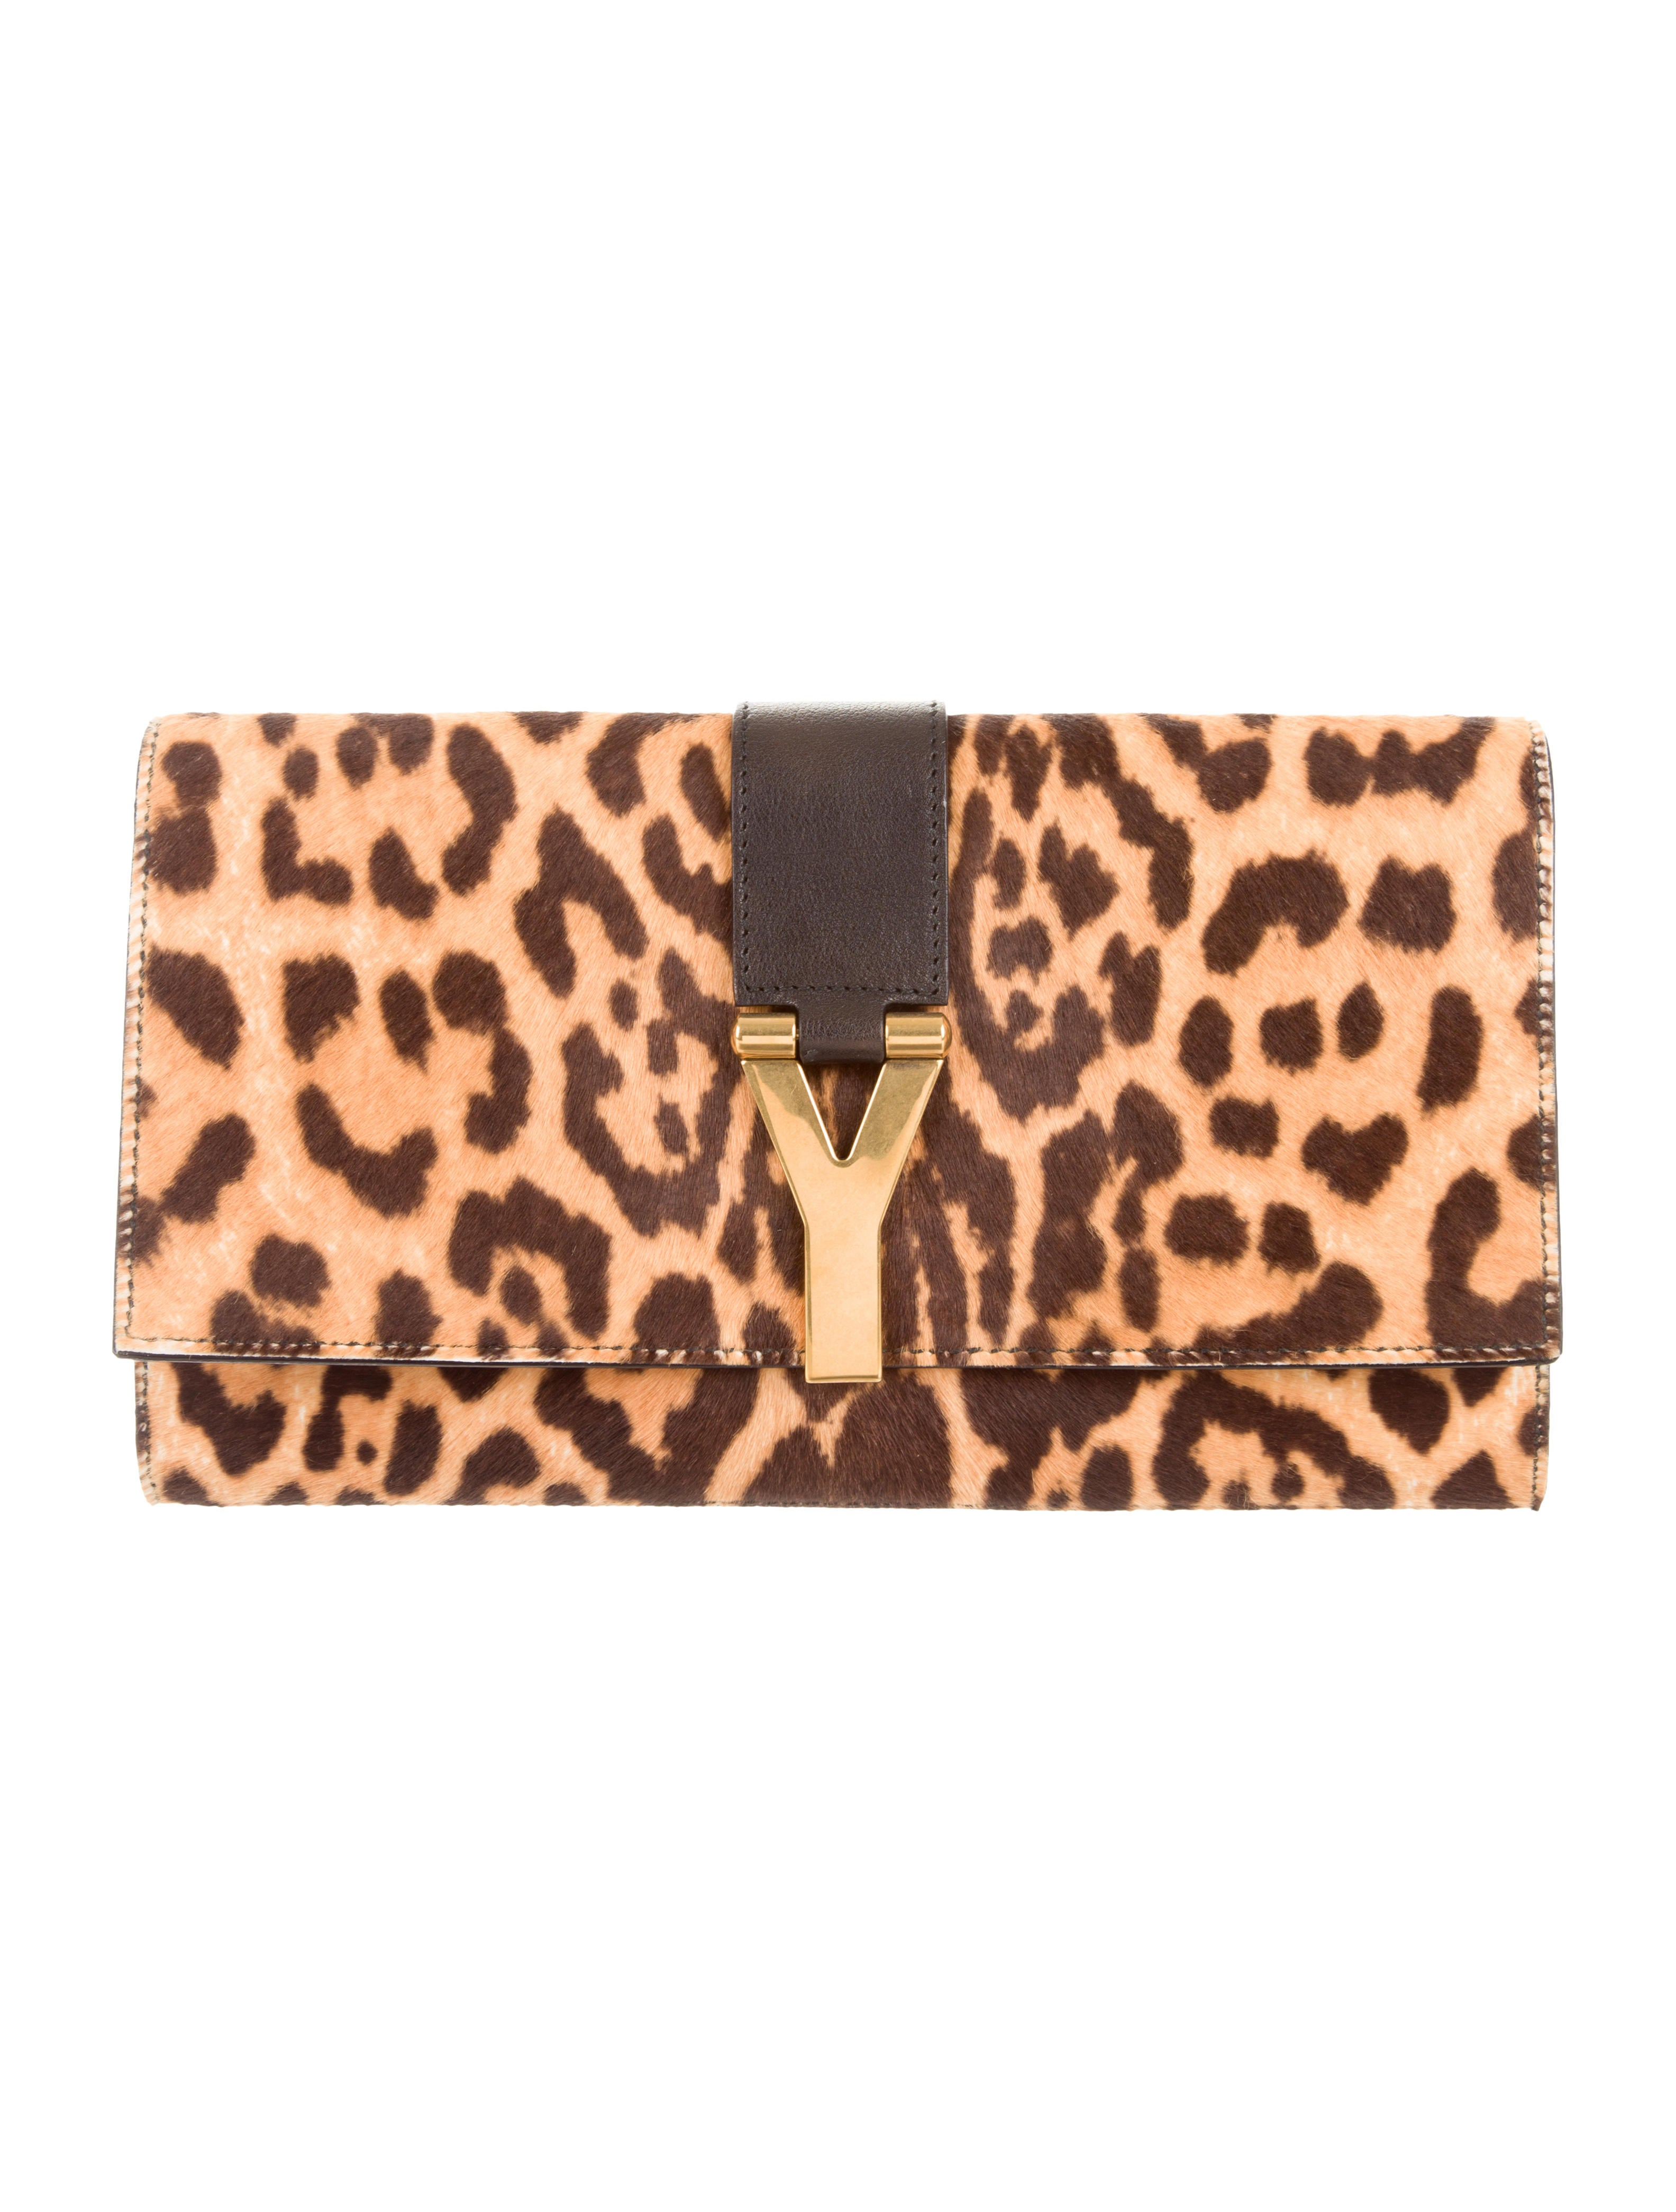 new ysl cabas chyc - yves saint laurent chyc clutch